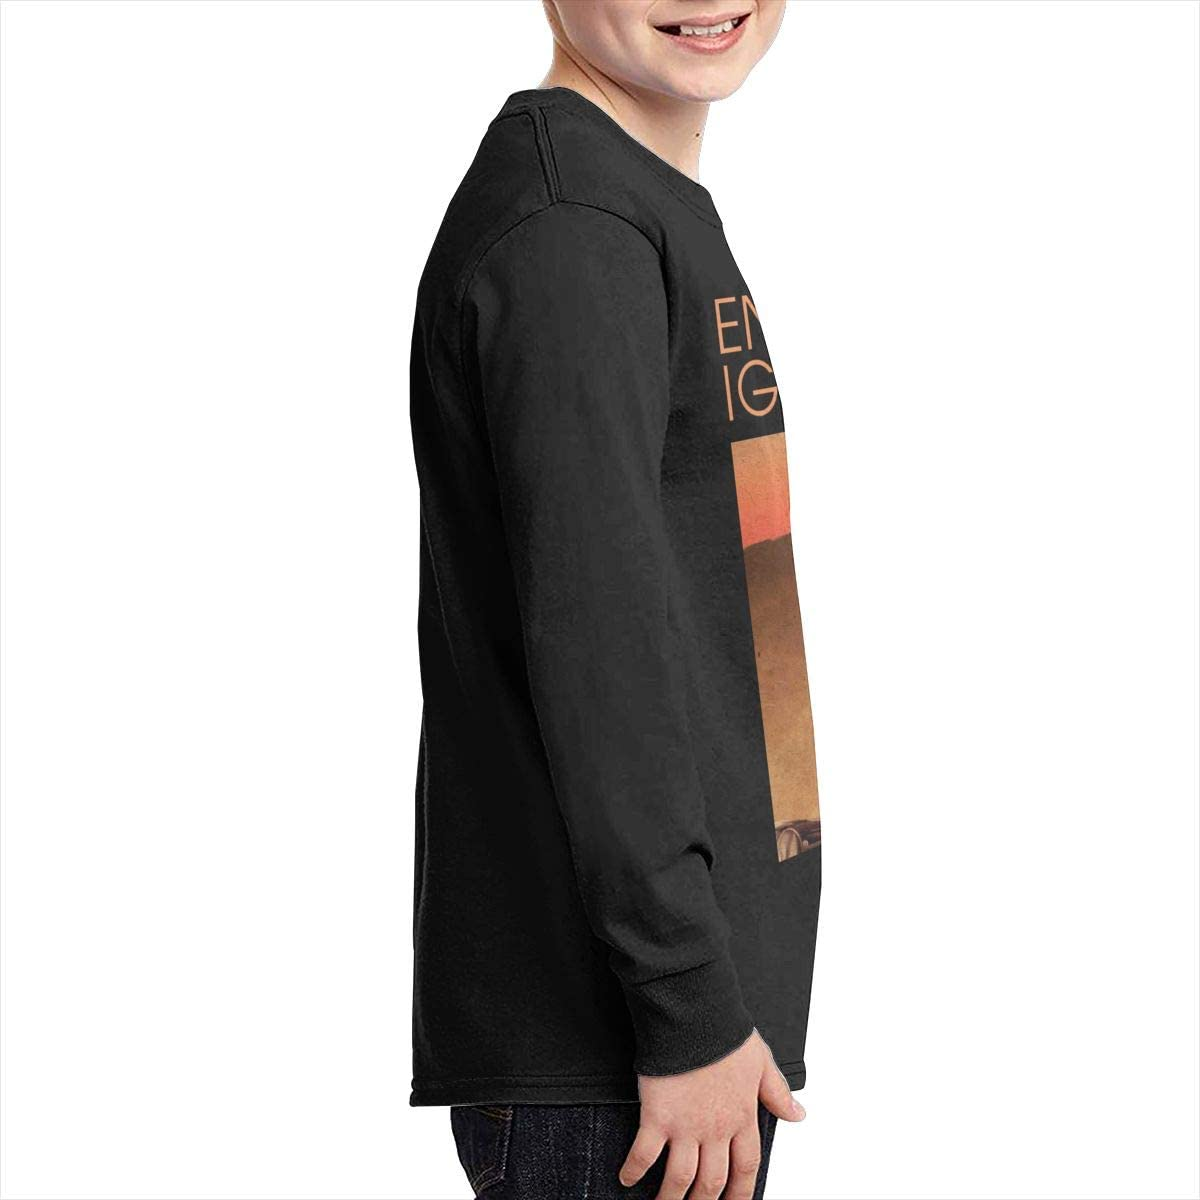 MichaelHazzard Enrique Iglesias Youth Breathable Long Sleeve Crewneck Tee T-Shirt for Boys and Girls